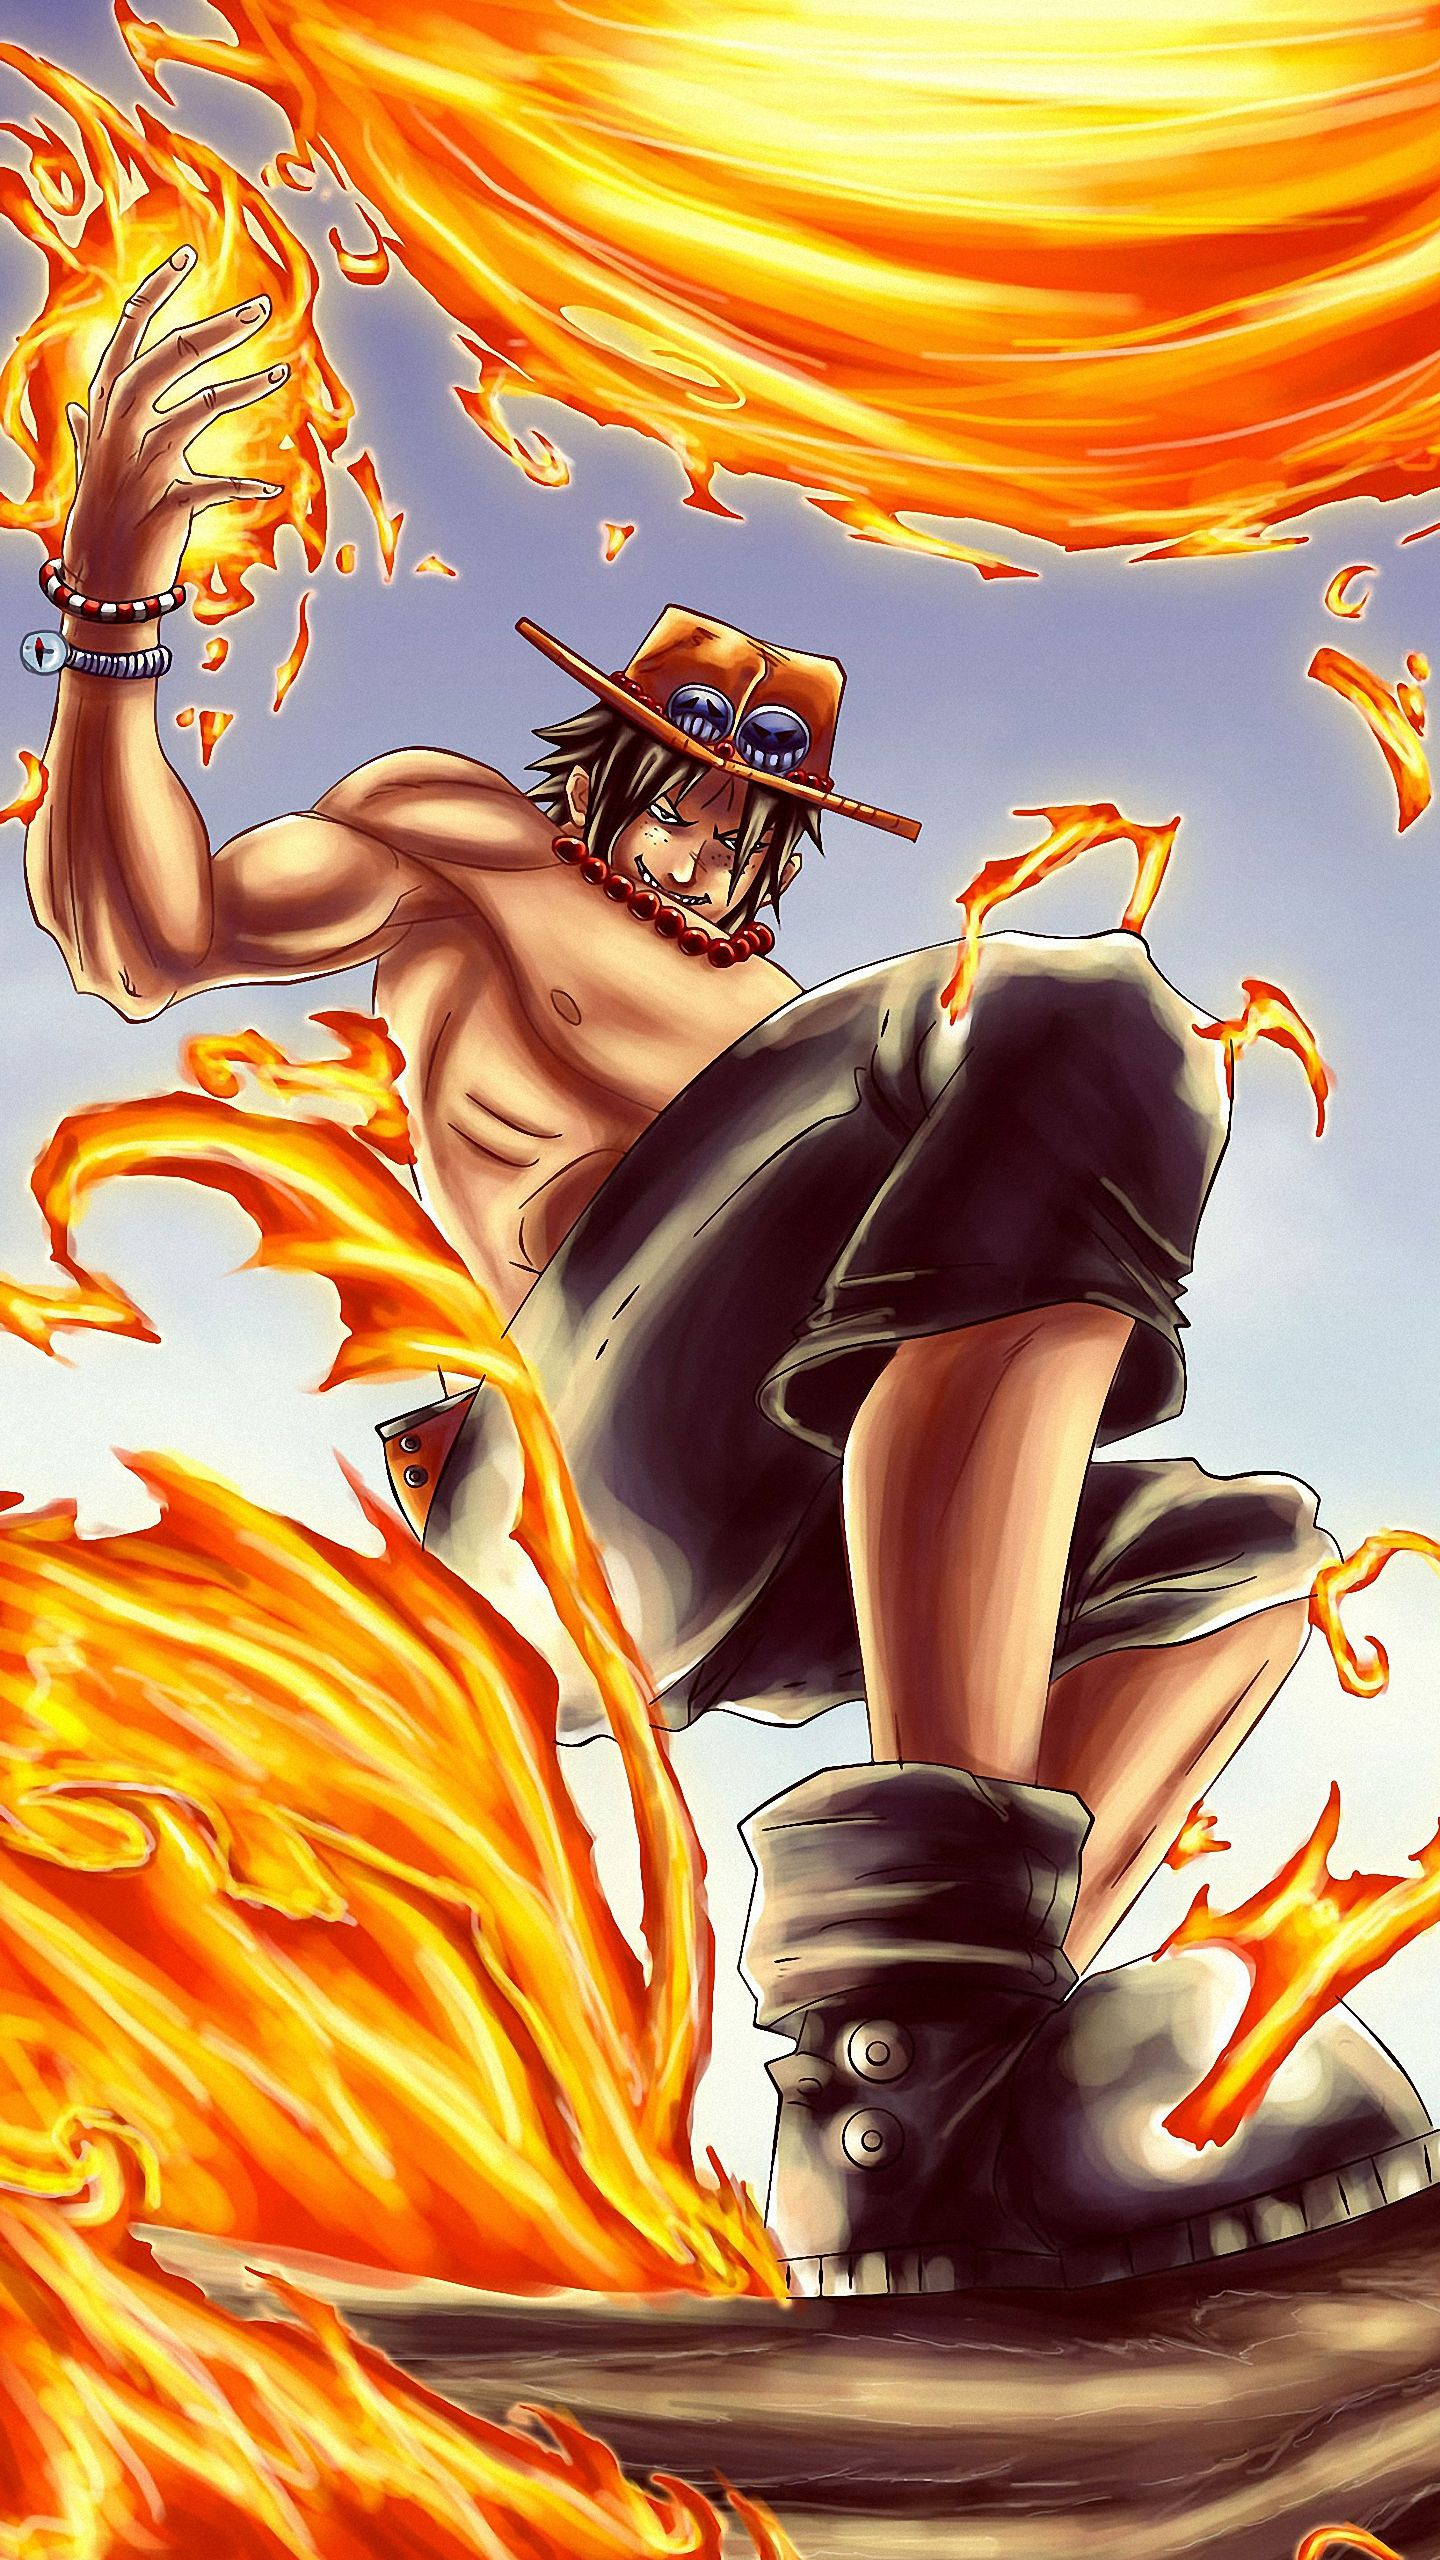 Portgas D Ace One Piece Iphone 6s Wallpapers Hd One Piece Wallpaper Iphone One Piece Ace One Piece Anime